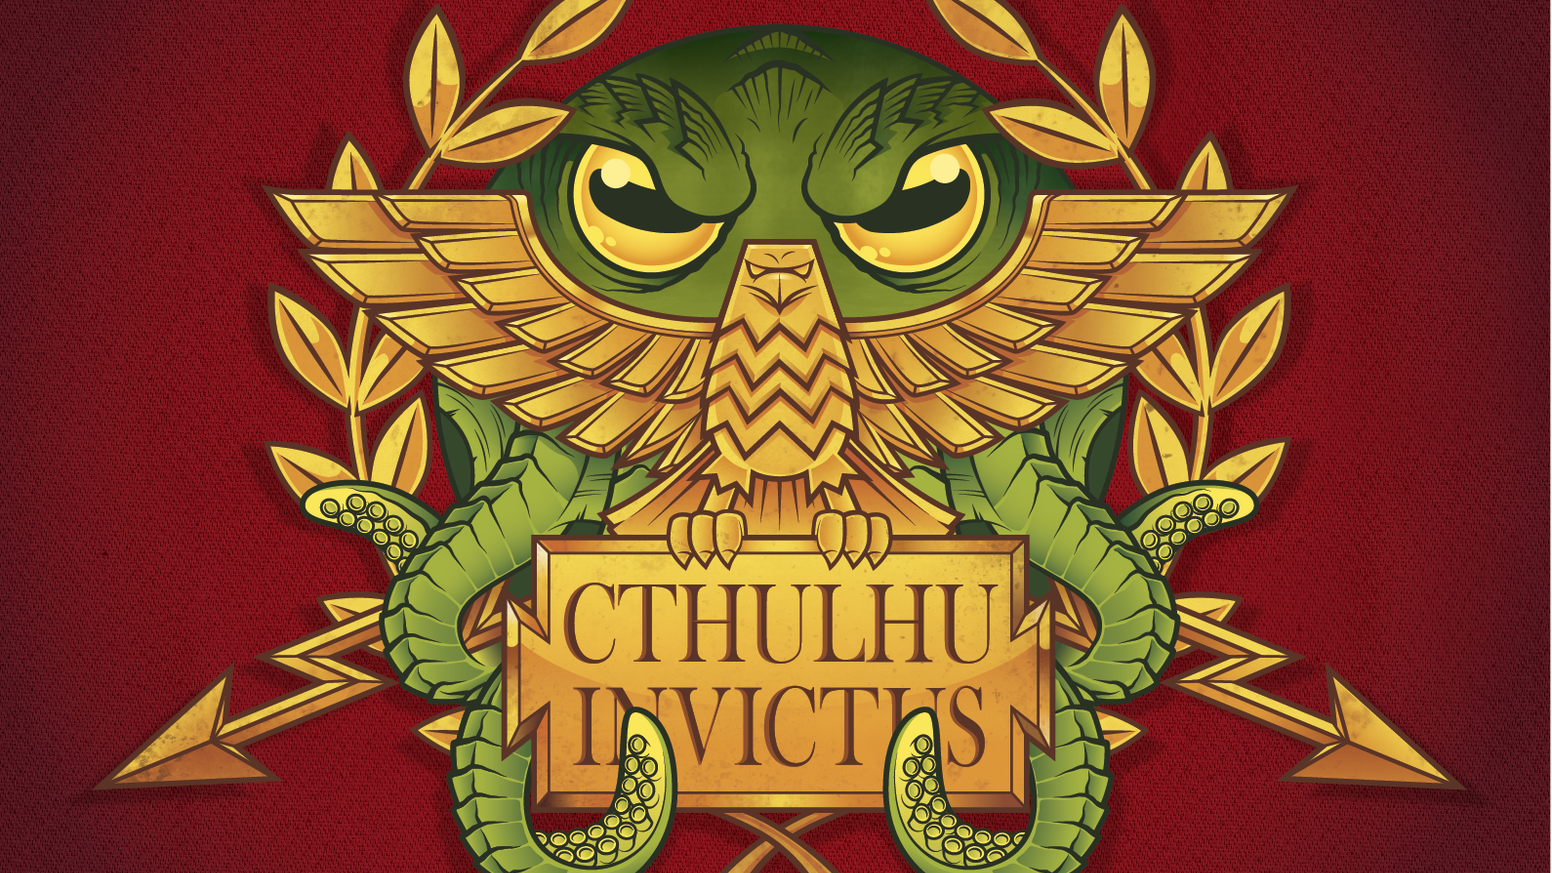 The 7th Edition Guide to Cthulhu Invictus by Golden Goblin